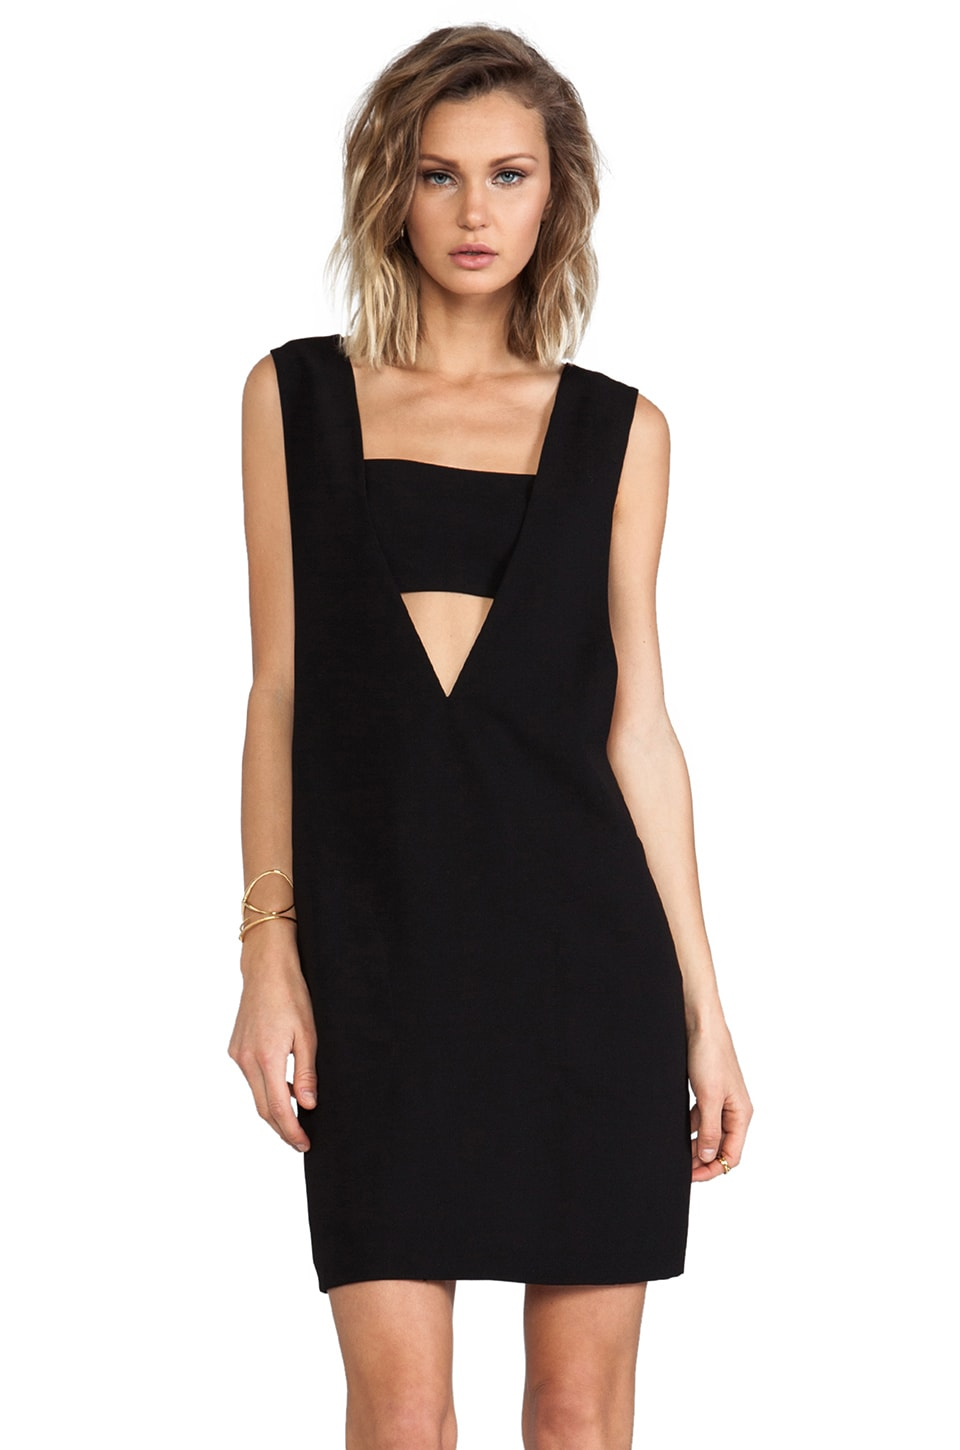 T by Alexander Wang Low V Dress in Black